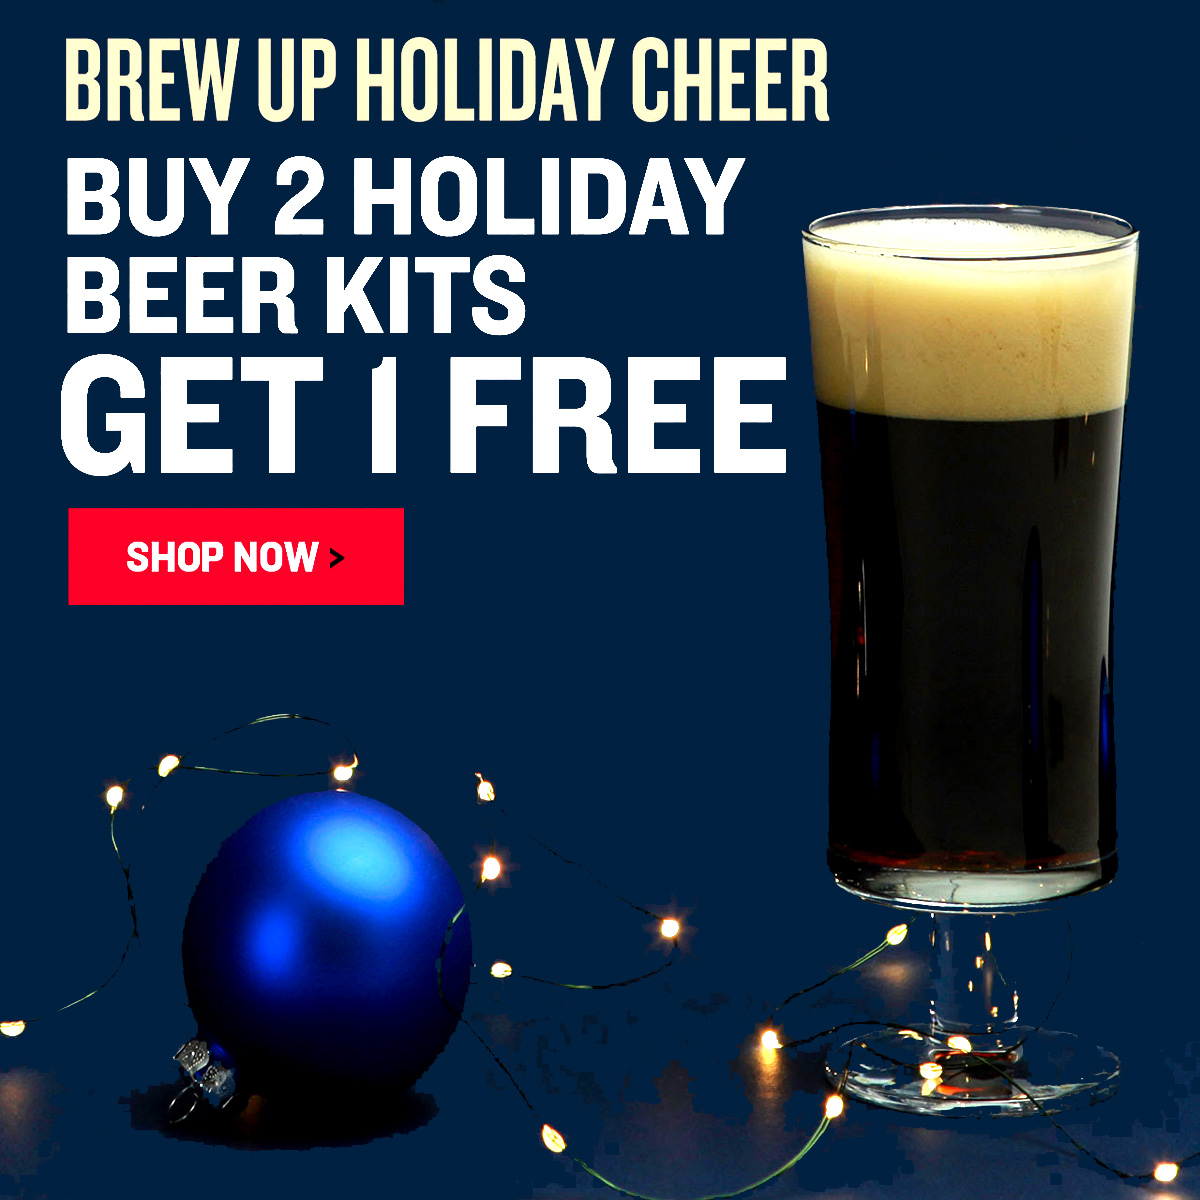 Northern Brewer Buy 2 Northern Brewer Holiday Beer Kits and Get A Third Kit Free Coupon Code